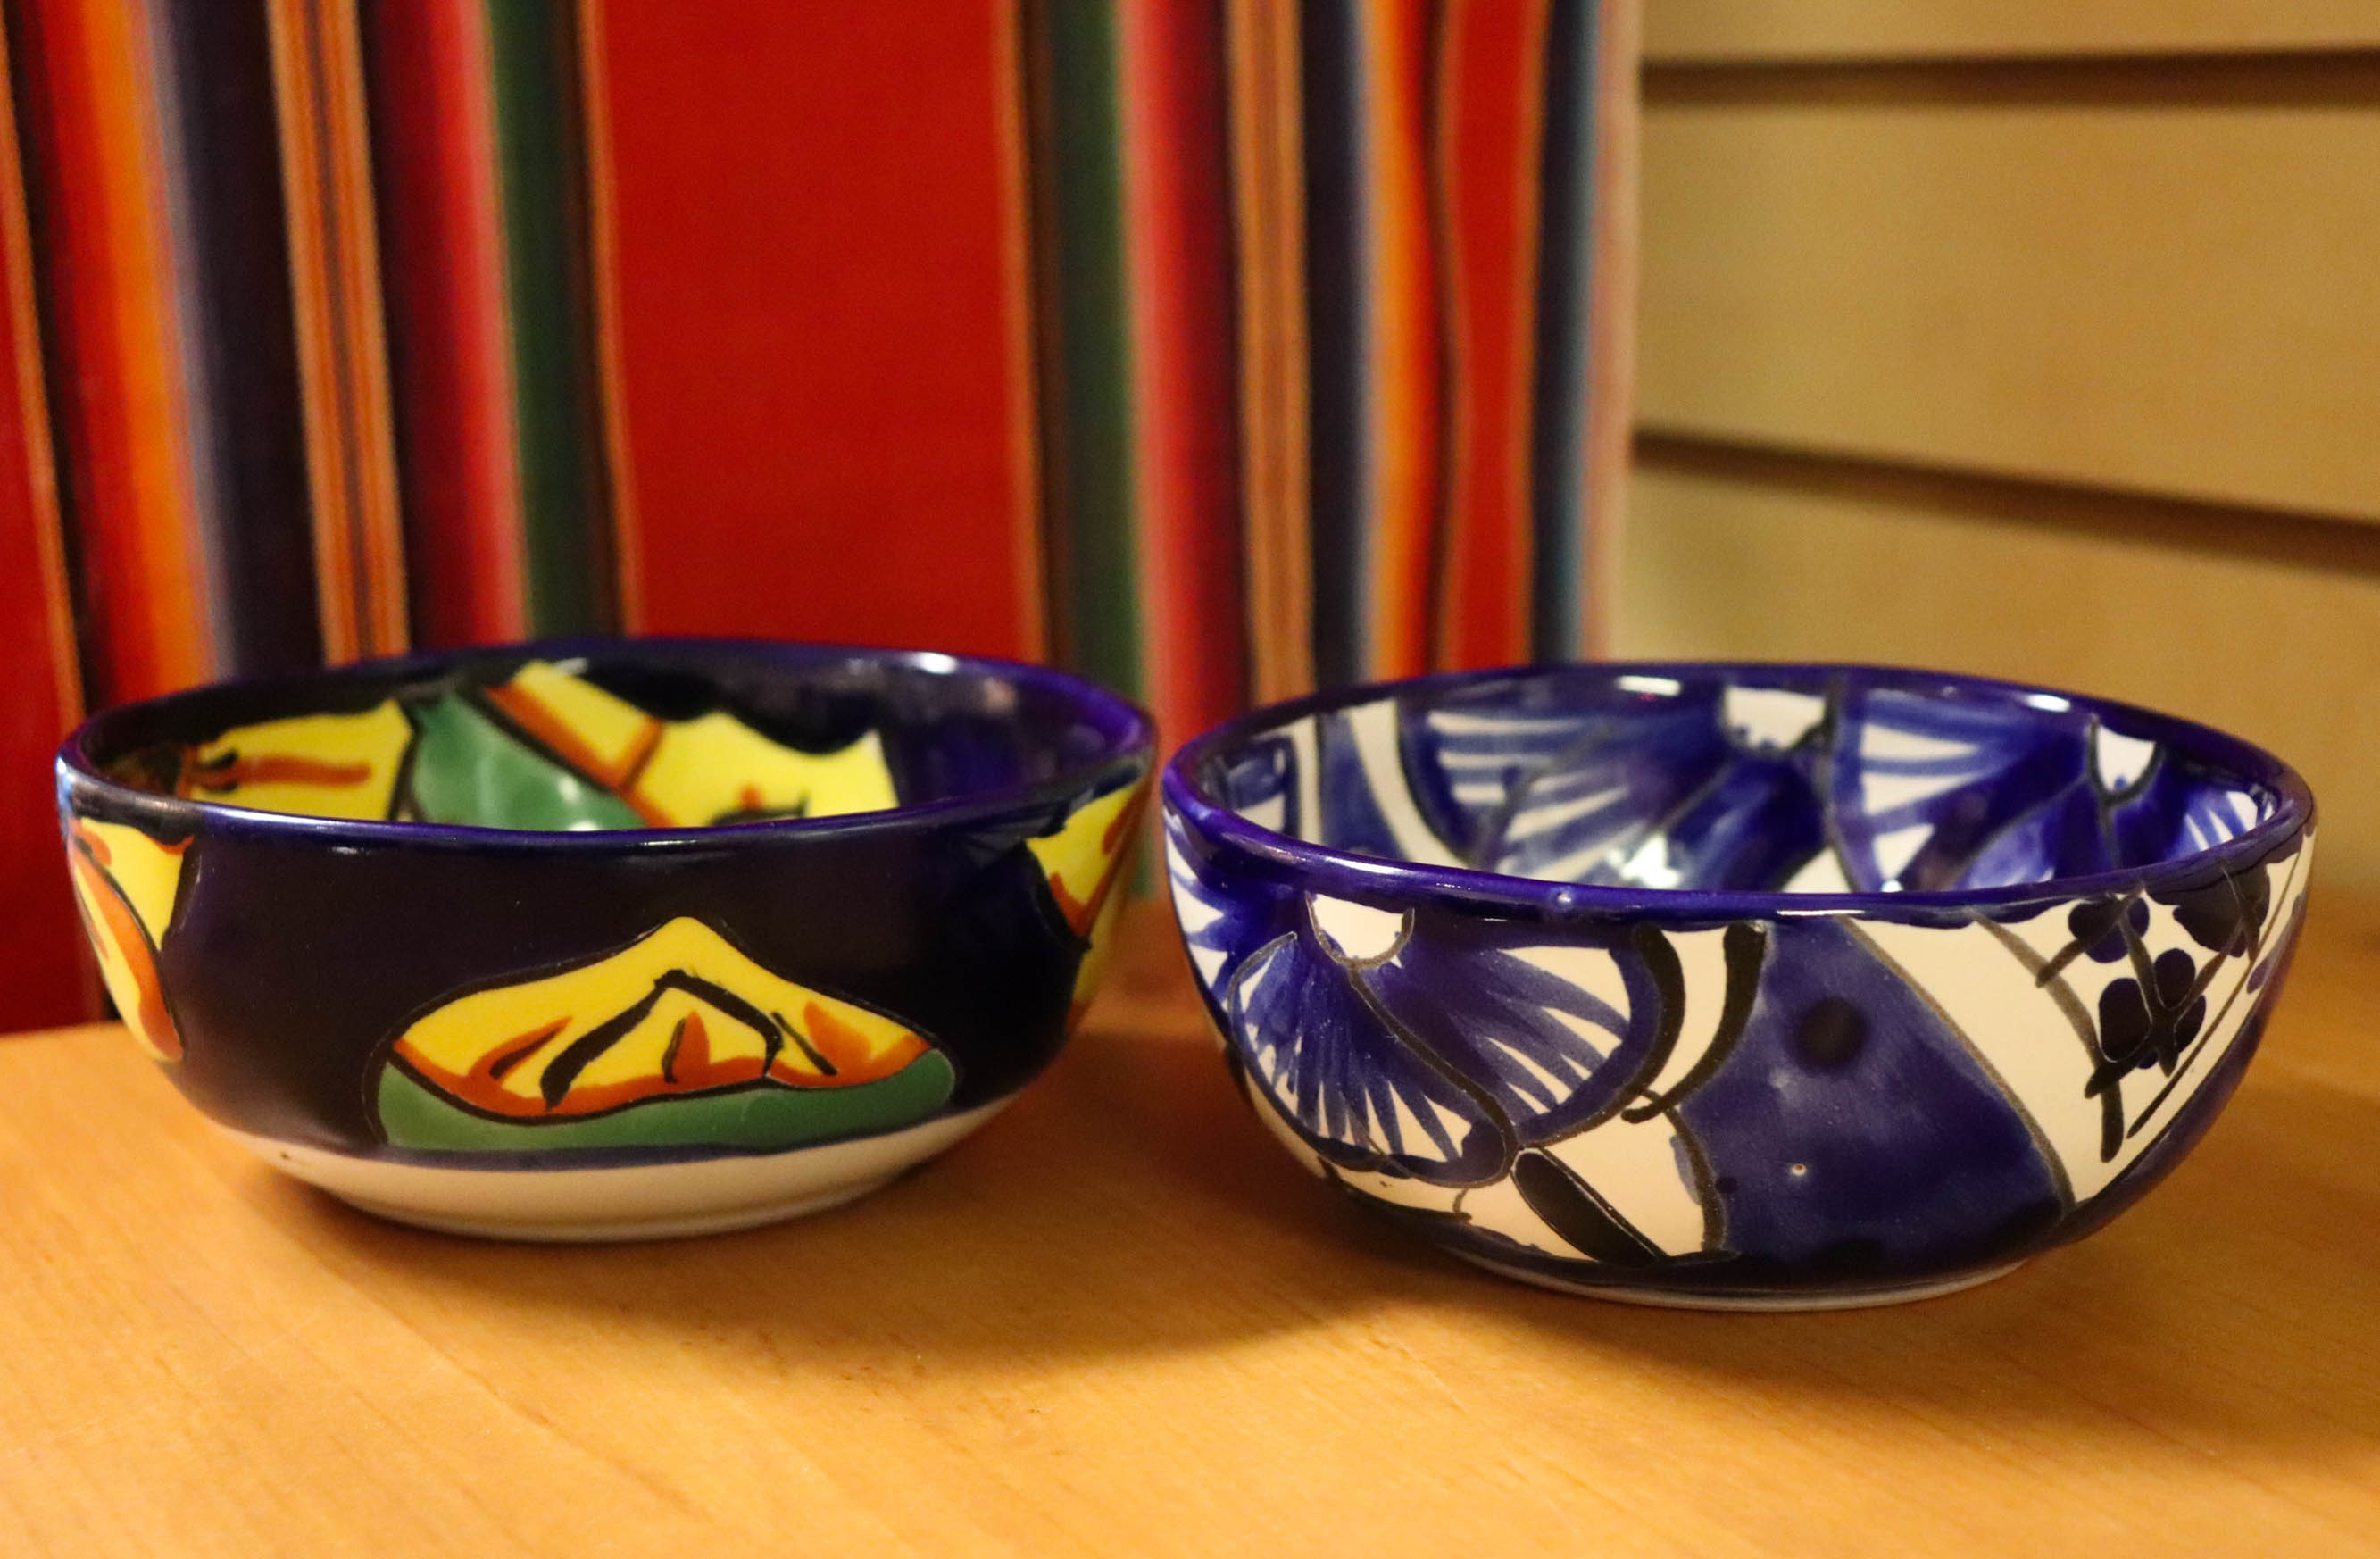 Ceramic Decorative Bowls